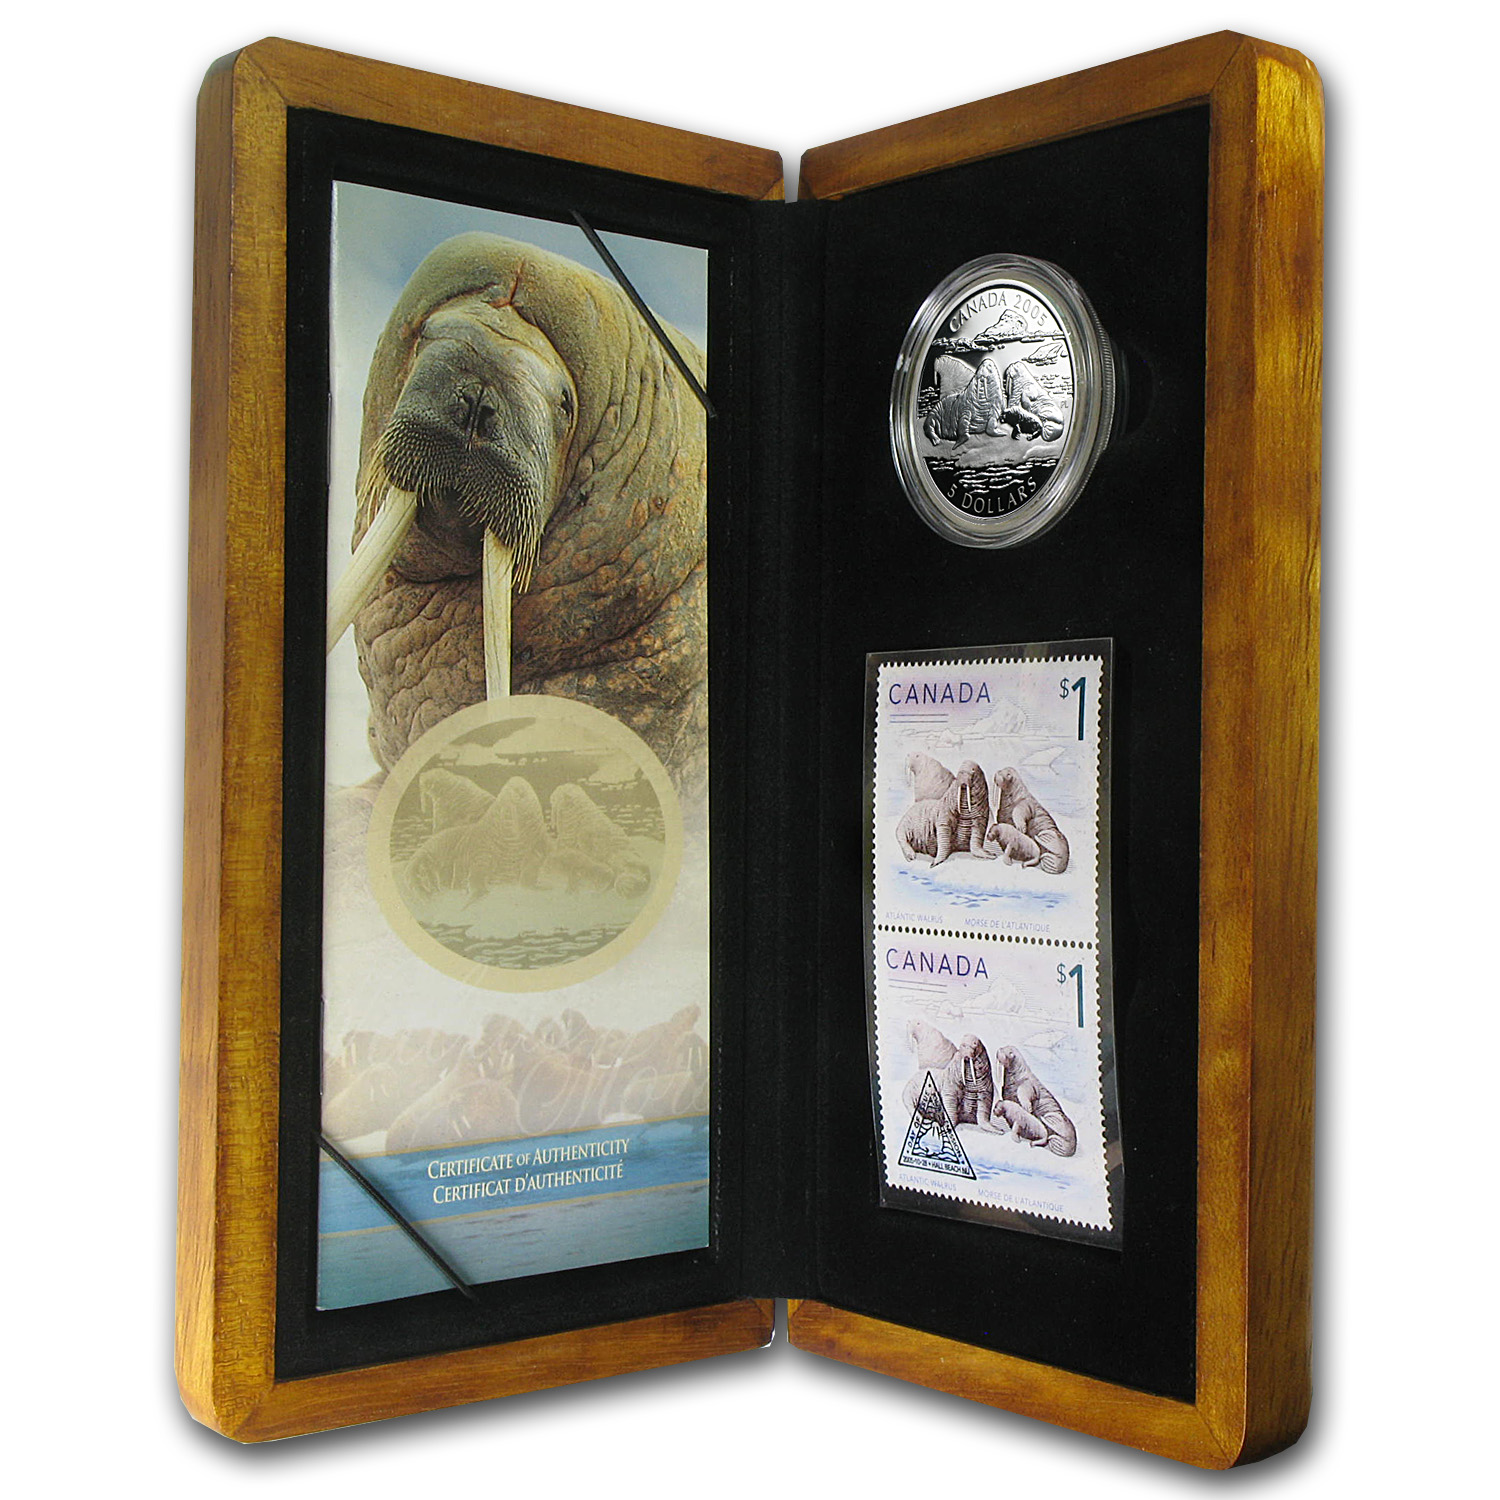 2005 Canada 1 oz Silver Walrus and Calf Coin & Stamp Set